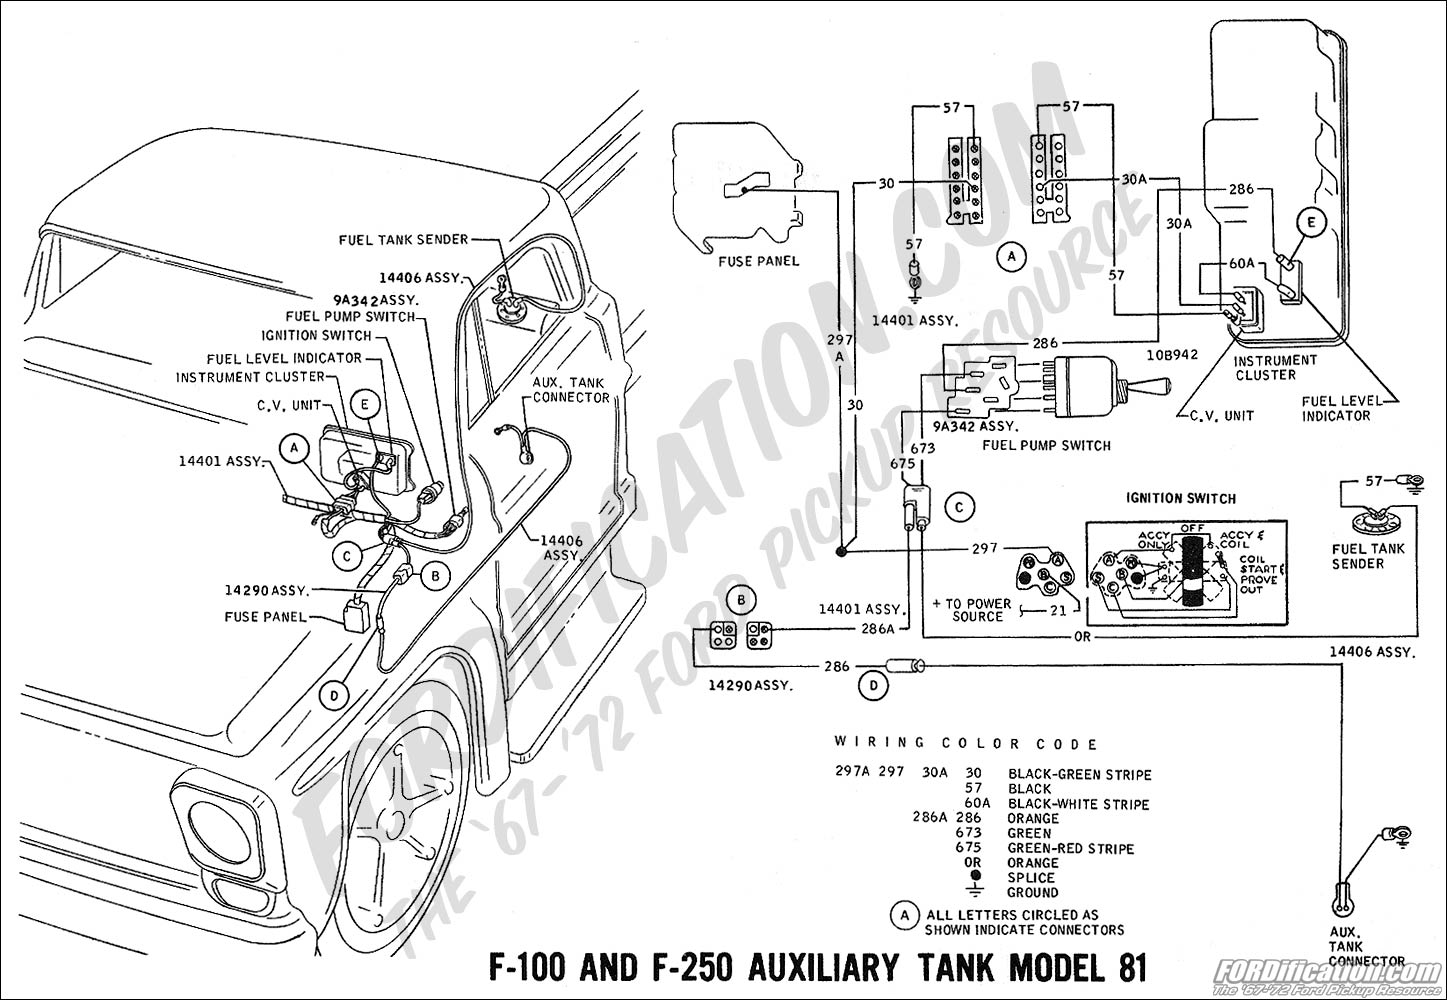 1966 ford f100 alternator diagram 15 www crest3dwhite de \u2022 Ford F100 Steering Column Diagram lamp wiring diagram 1970 ford f100 best place to find wiring and rh 15 fofoneontany org